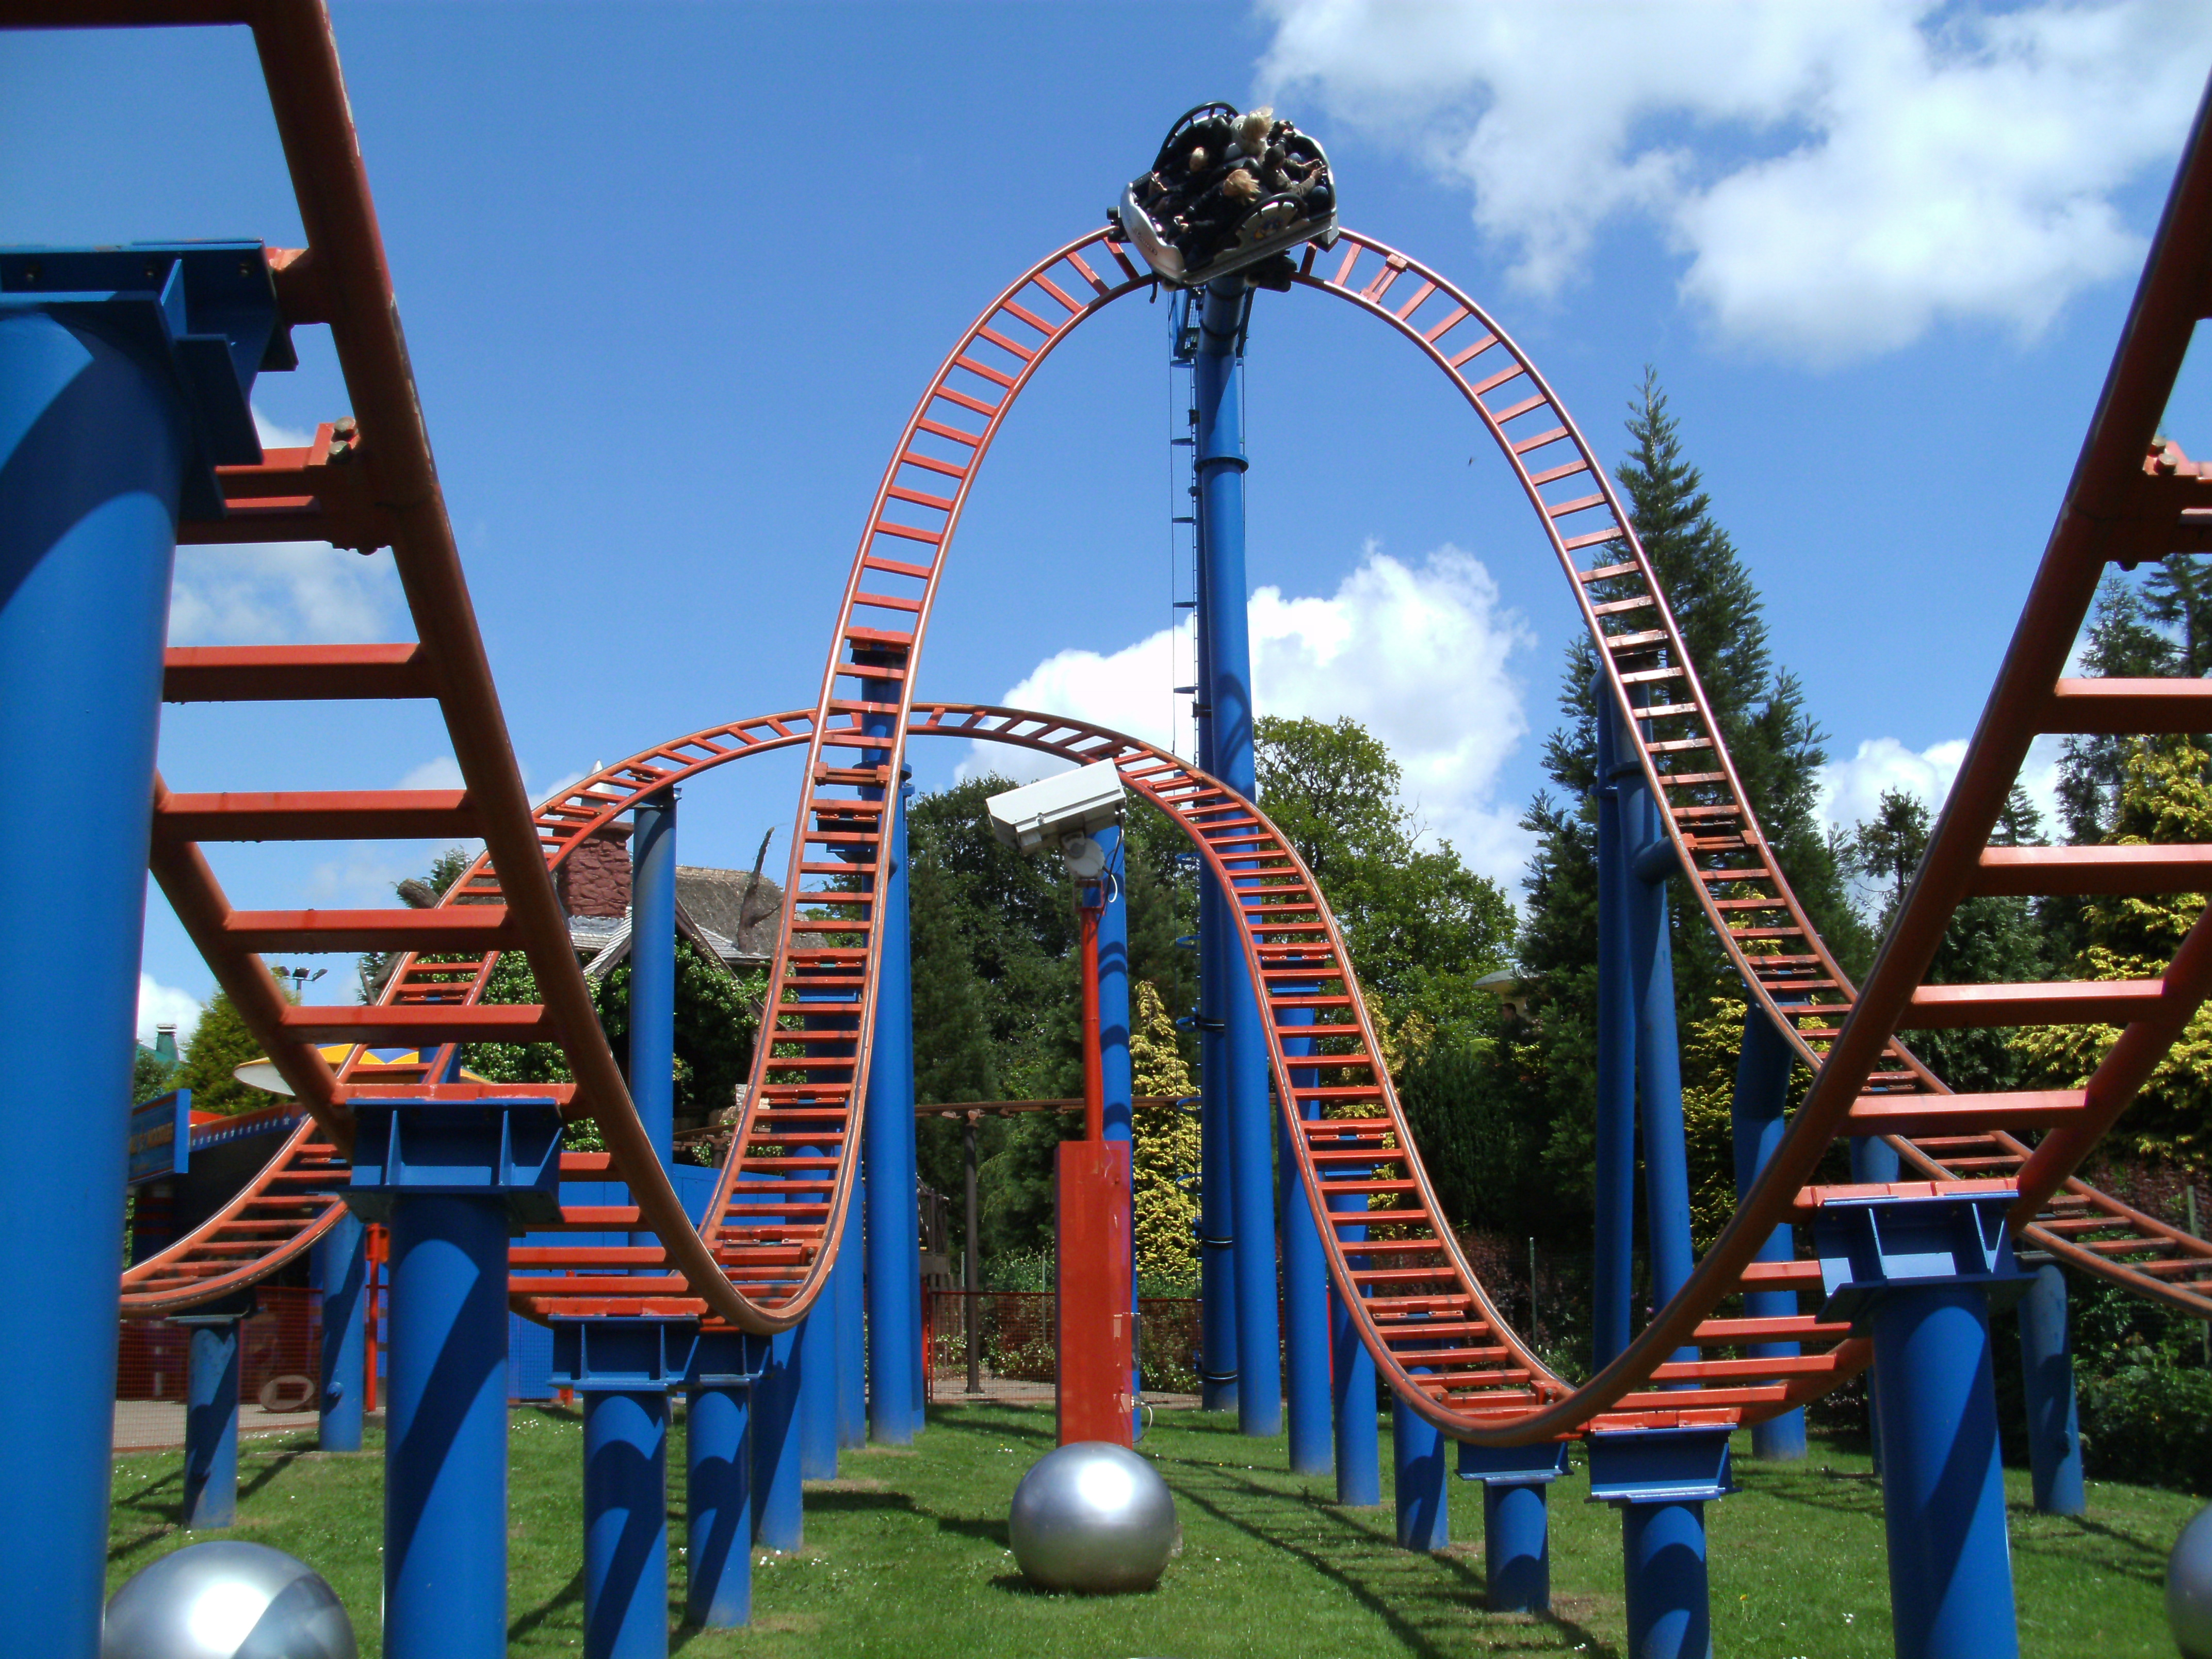 Half price Merlin Annual Pass sale extended. | Topdogdays